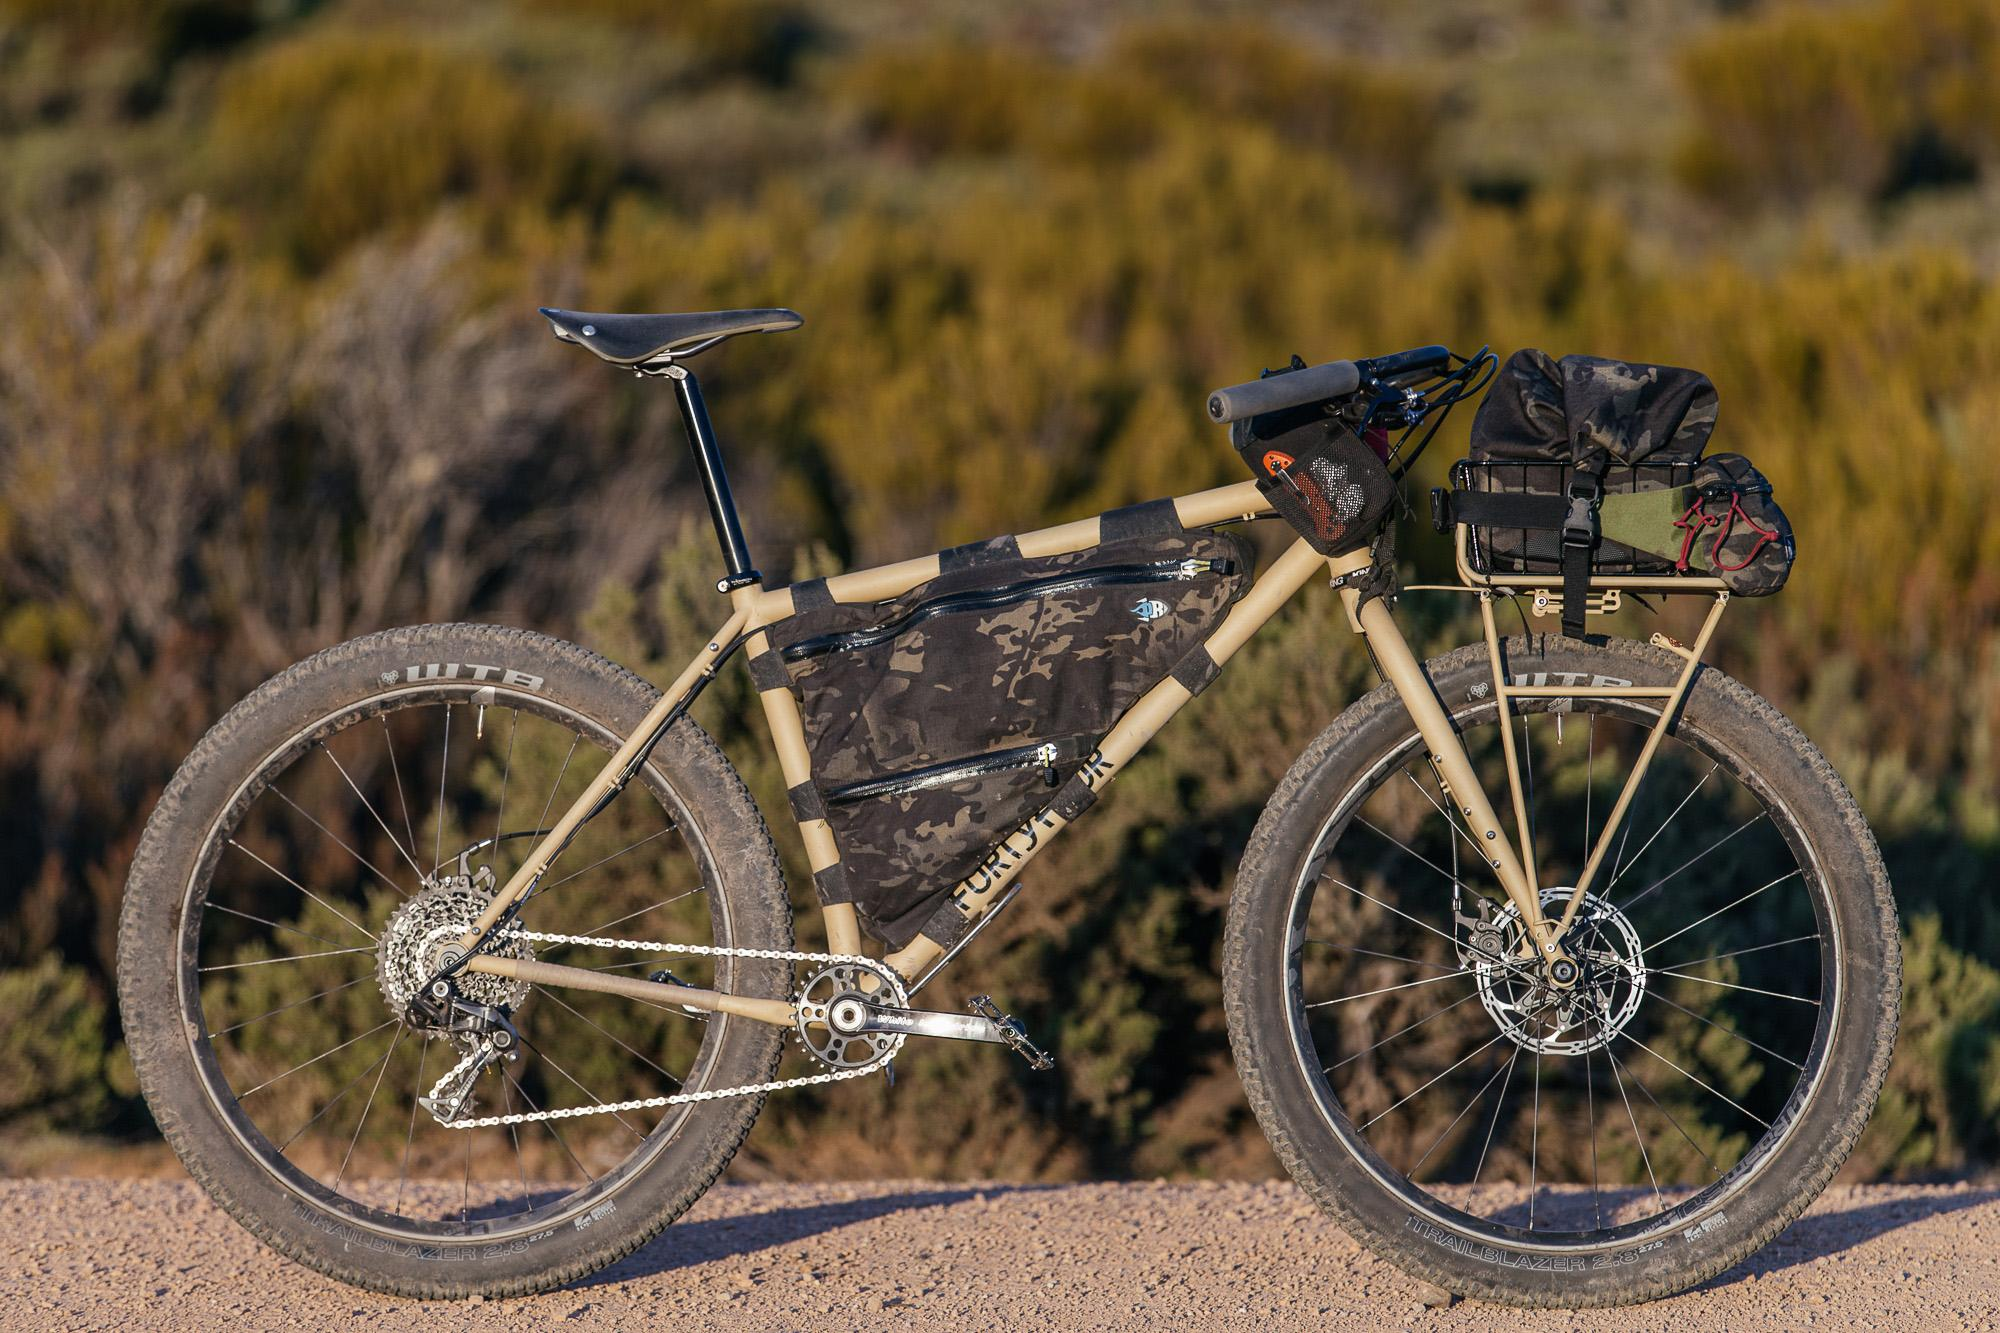 My Bush Blasted 44 Bikes Rigid MTB Tourer-35